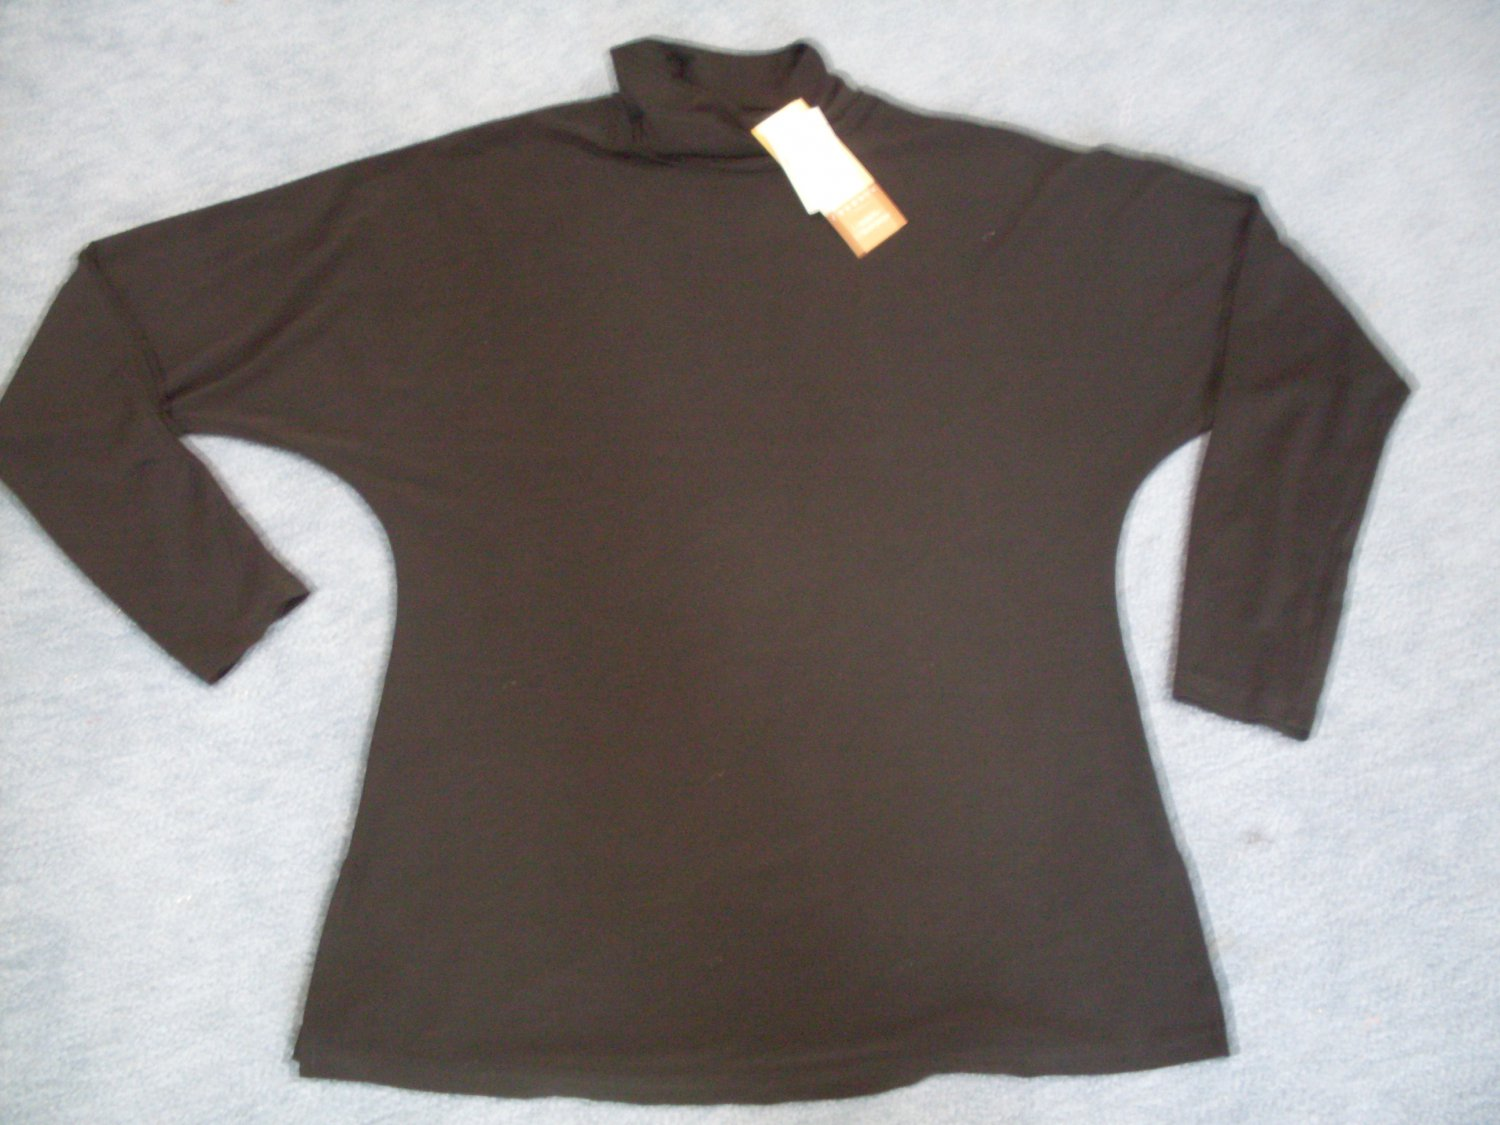 NEW Coldwater Creek Black Travel Knit Turtleneck Top Small